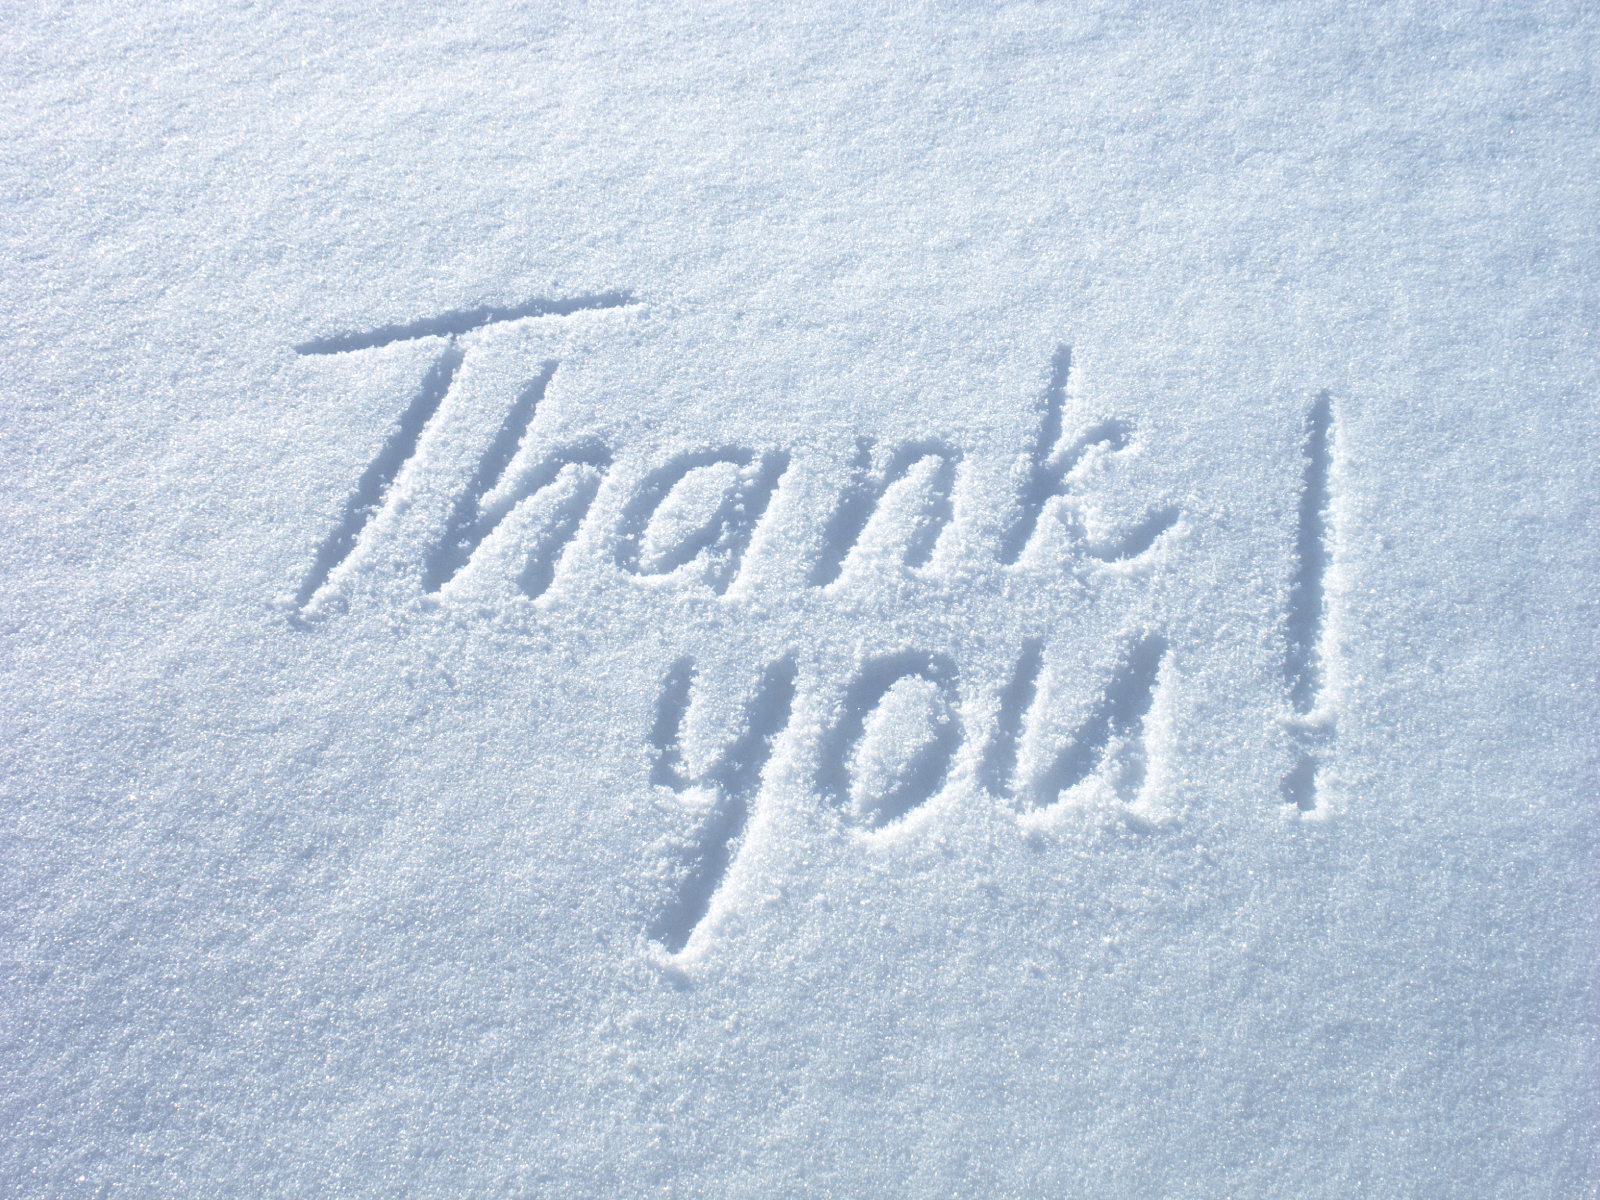 thanks to advertisers above the law thank you thanks snow snowy ice icy winter